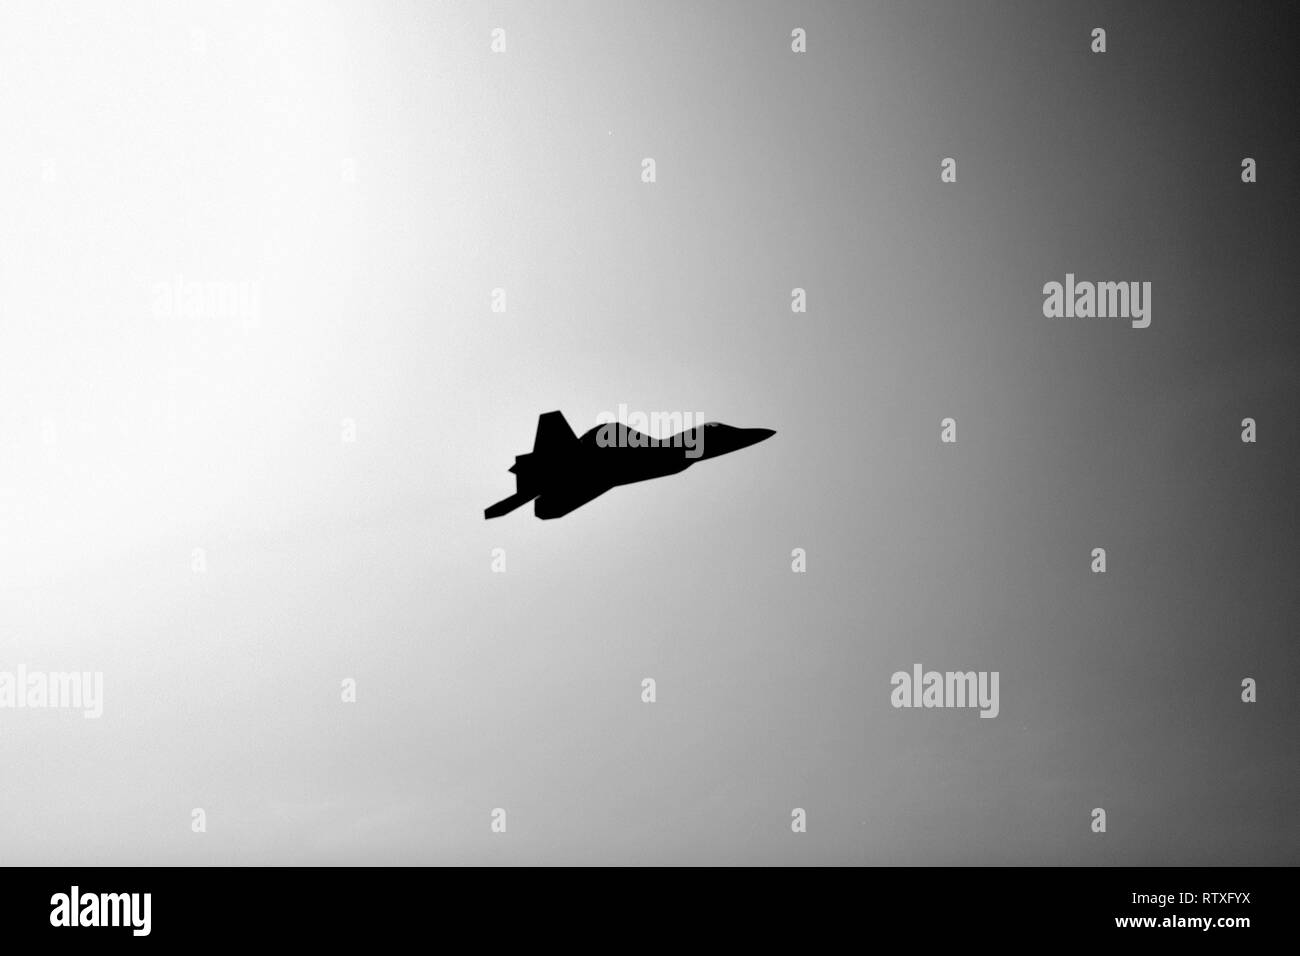 Threats Black and White Stock Photos & Images - Alamy